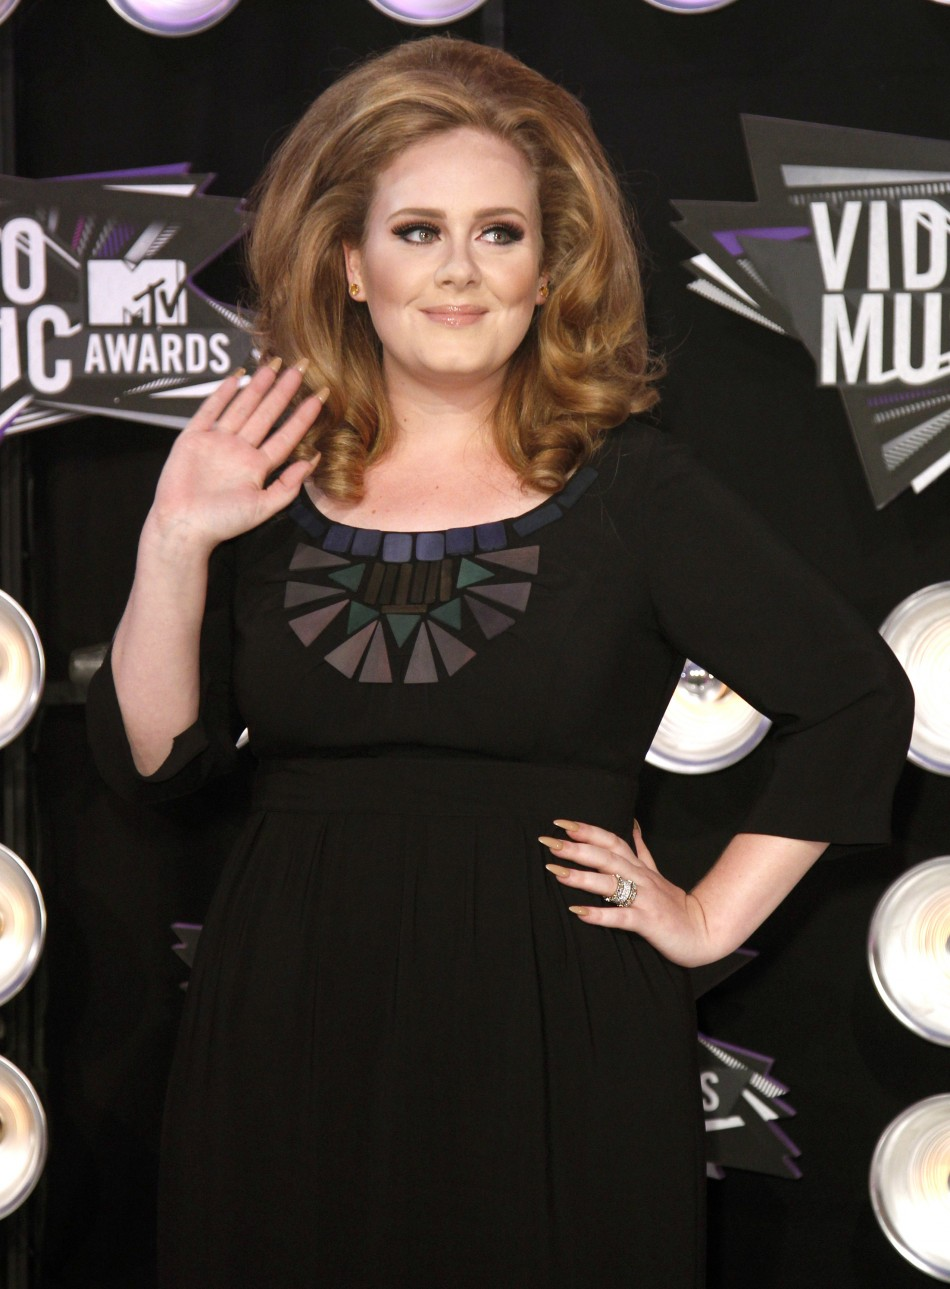 Singer Adele arrives at the 2011 MTV Video Music Awards in Los Angeles